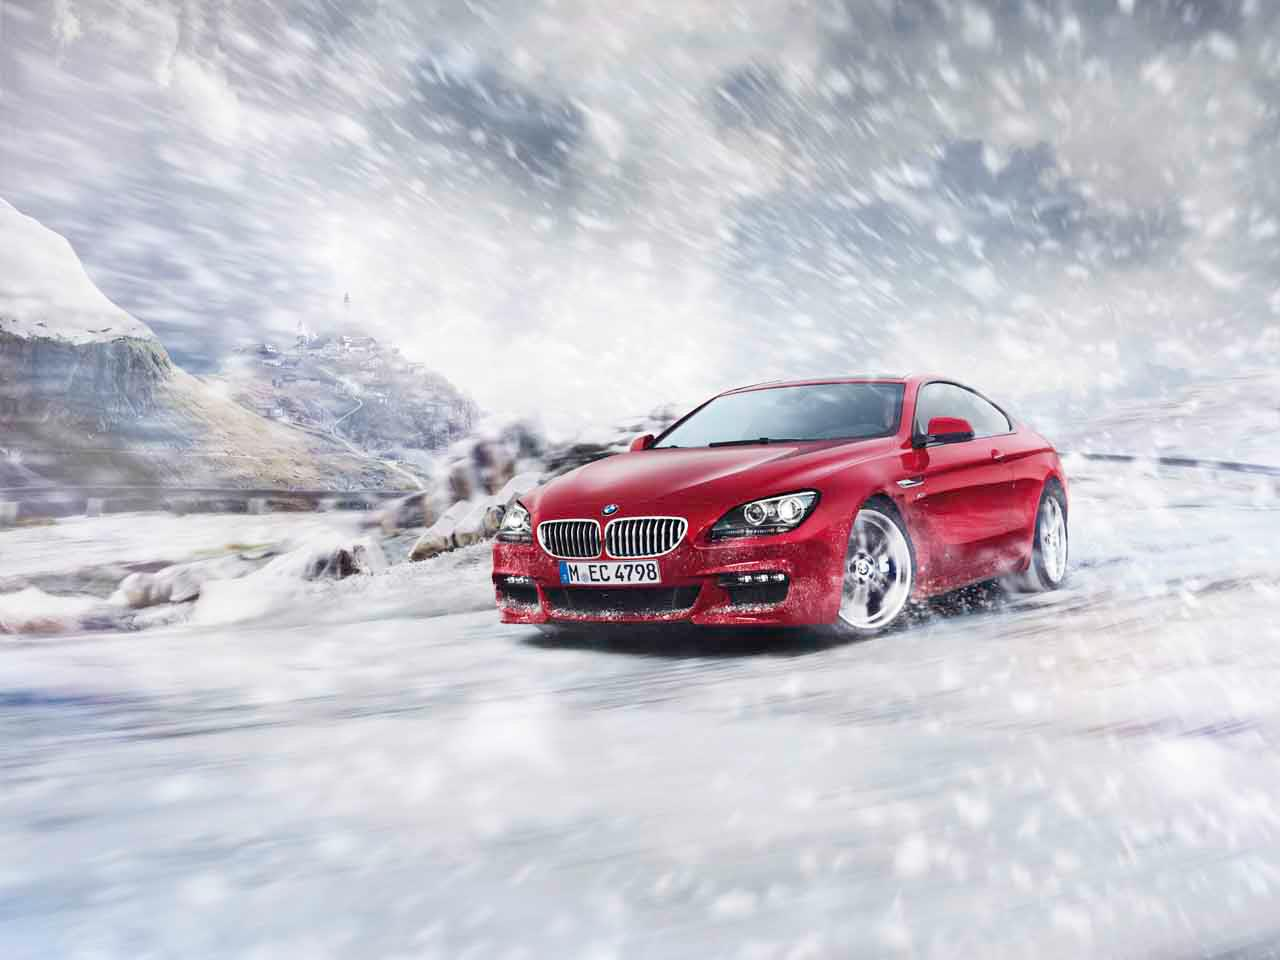 Merry Christmas From Supercar Manufacturers Photo 22